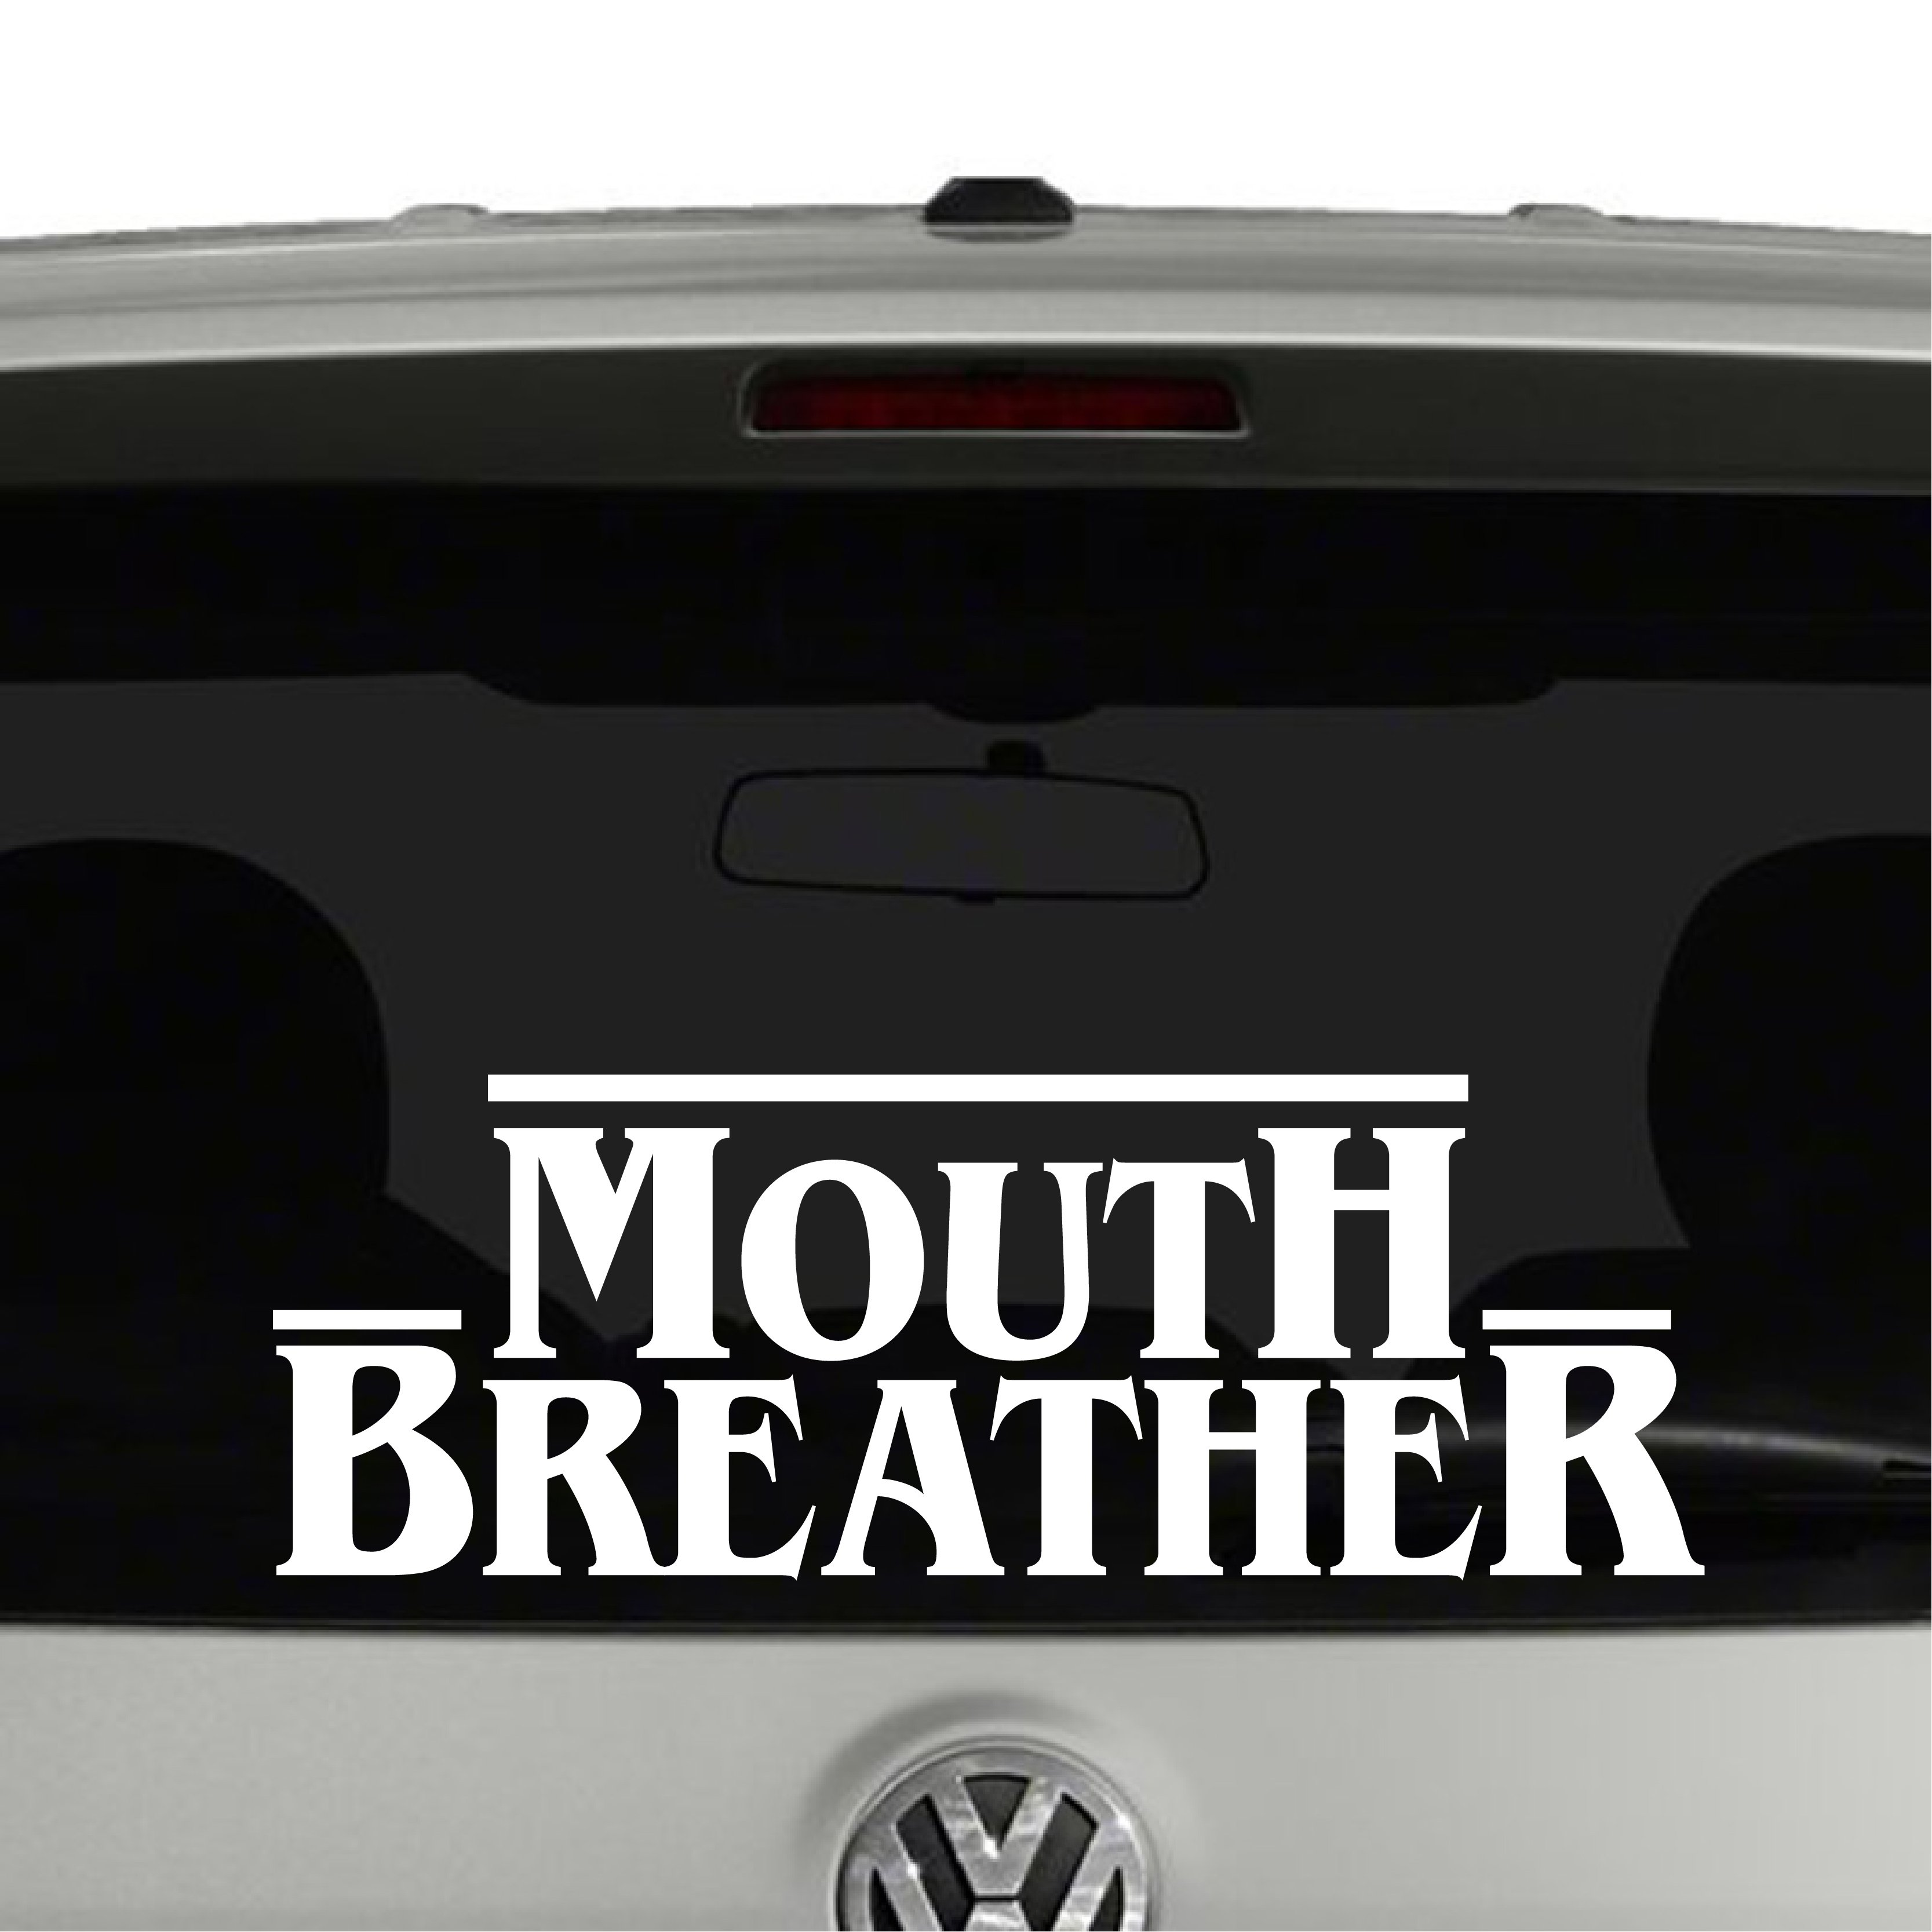 Mouth Breather Stranger Things Inspired Vinyl Decal Sticker